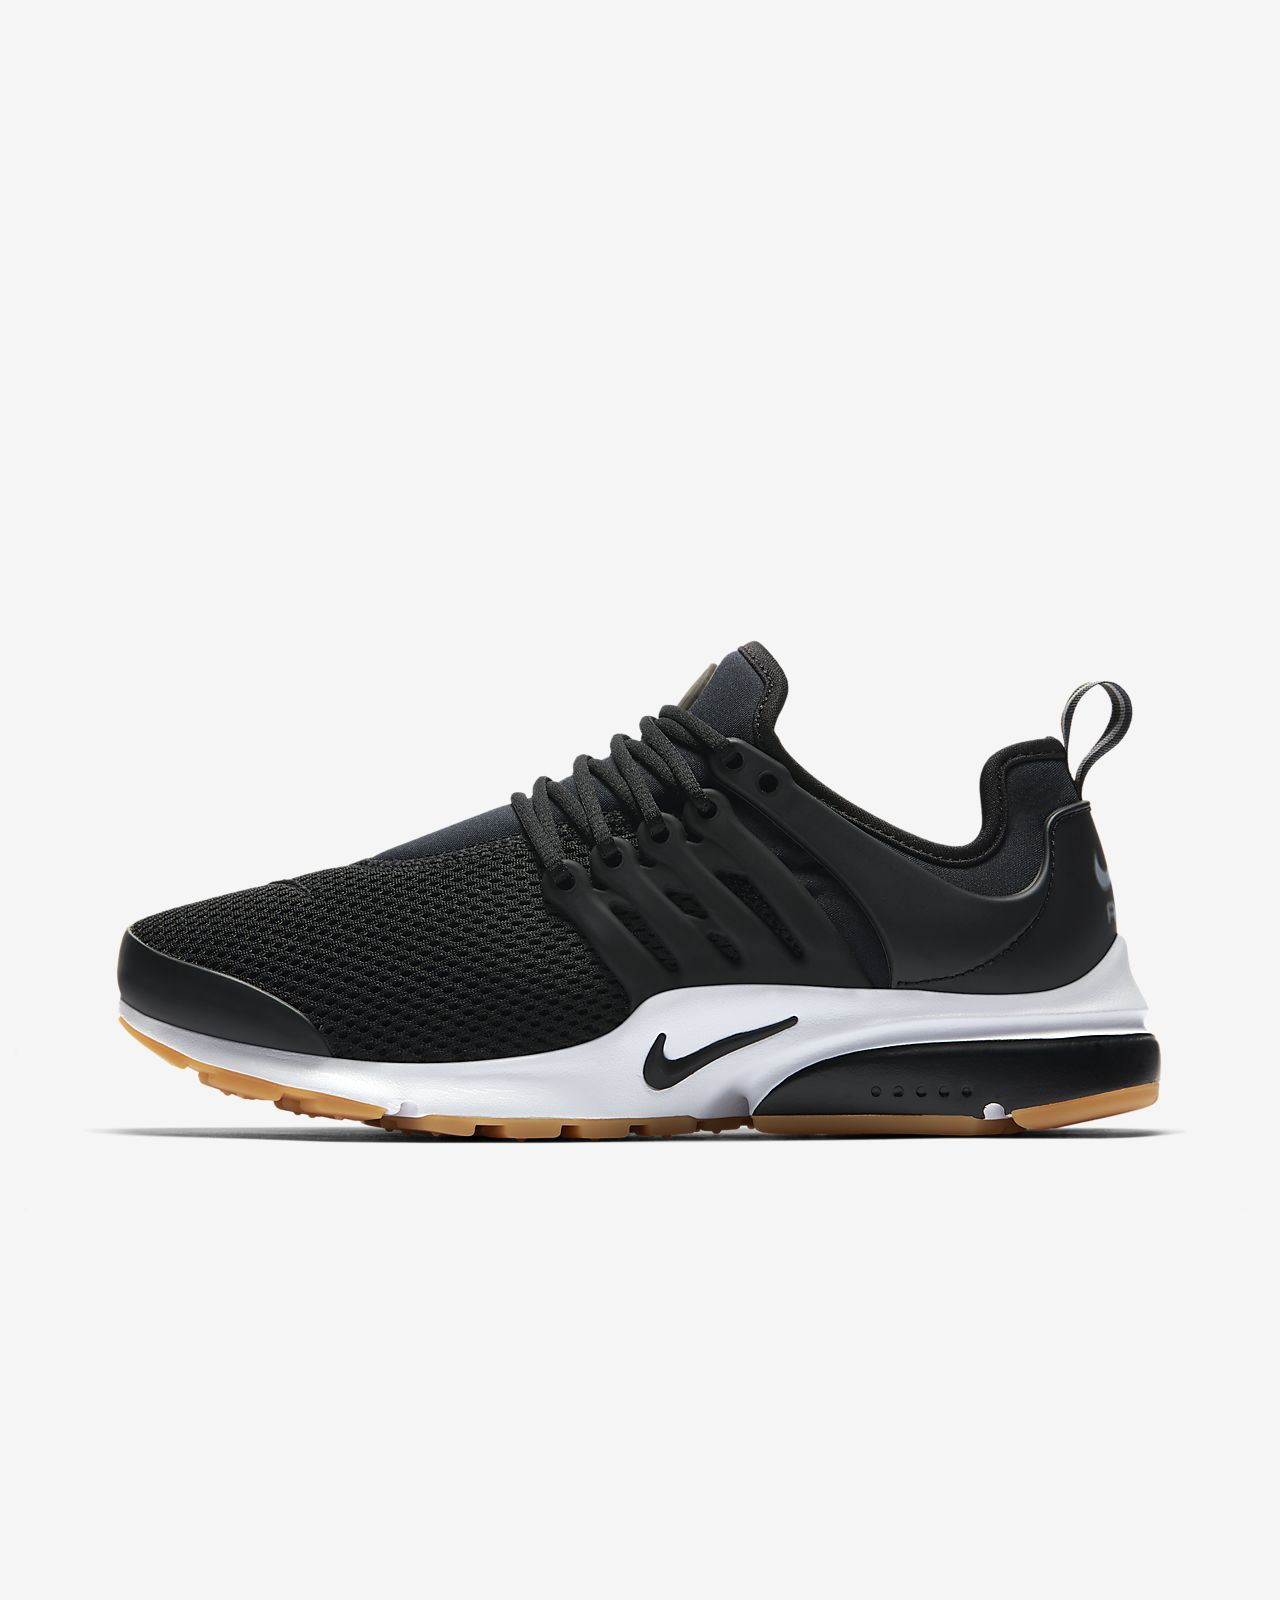 95e15c0854f Nike Air Presto Women s Shoe. Nike.com